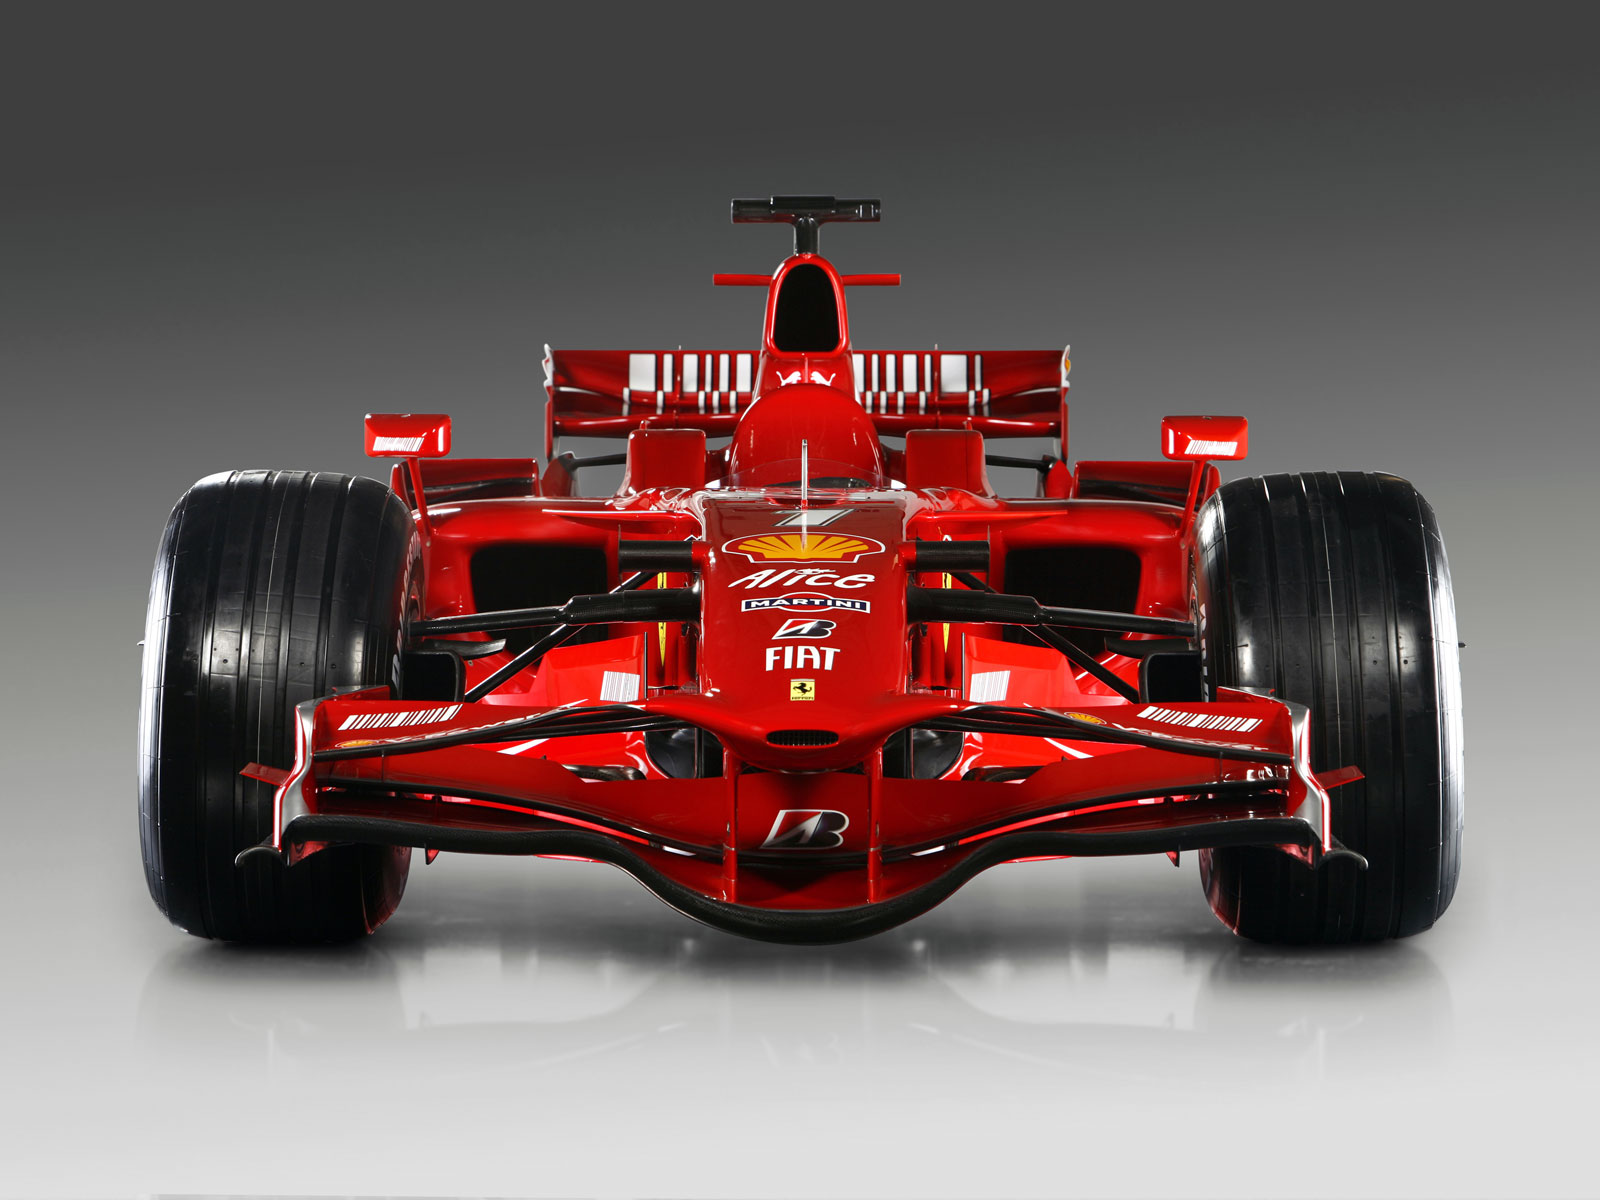 Formula 1 Race 21751 Hd Wallpapers in Sports   Imagescicom 1600x1200